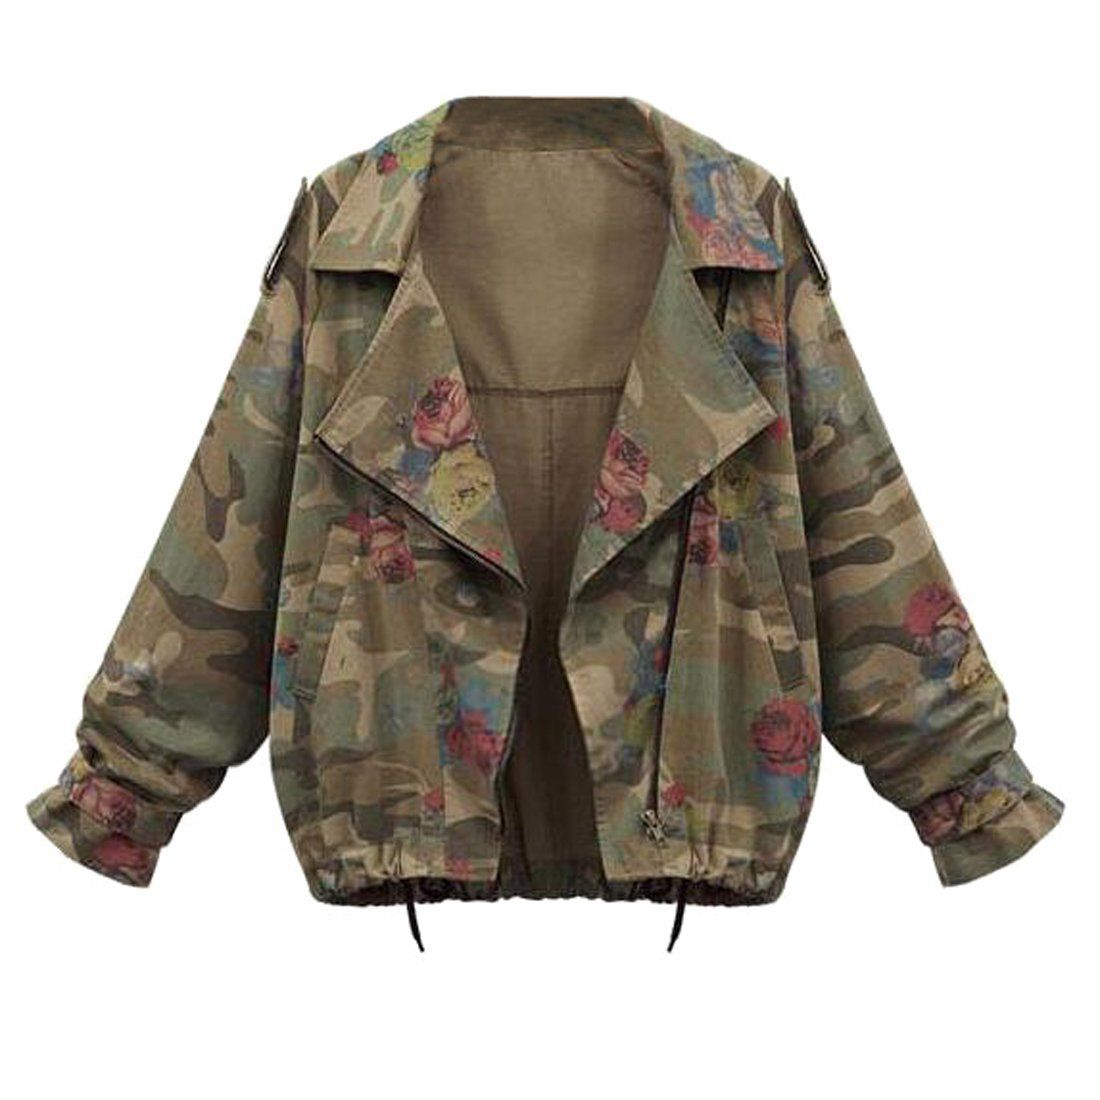 Eforward Women Bomber Jacket Camo Printed Short Coat Outwear Flight Jacket Coat L Army Green Awesome Products Selected By Camouflage Jacket Camo Print Jacket